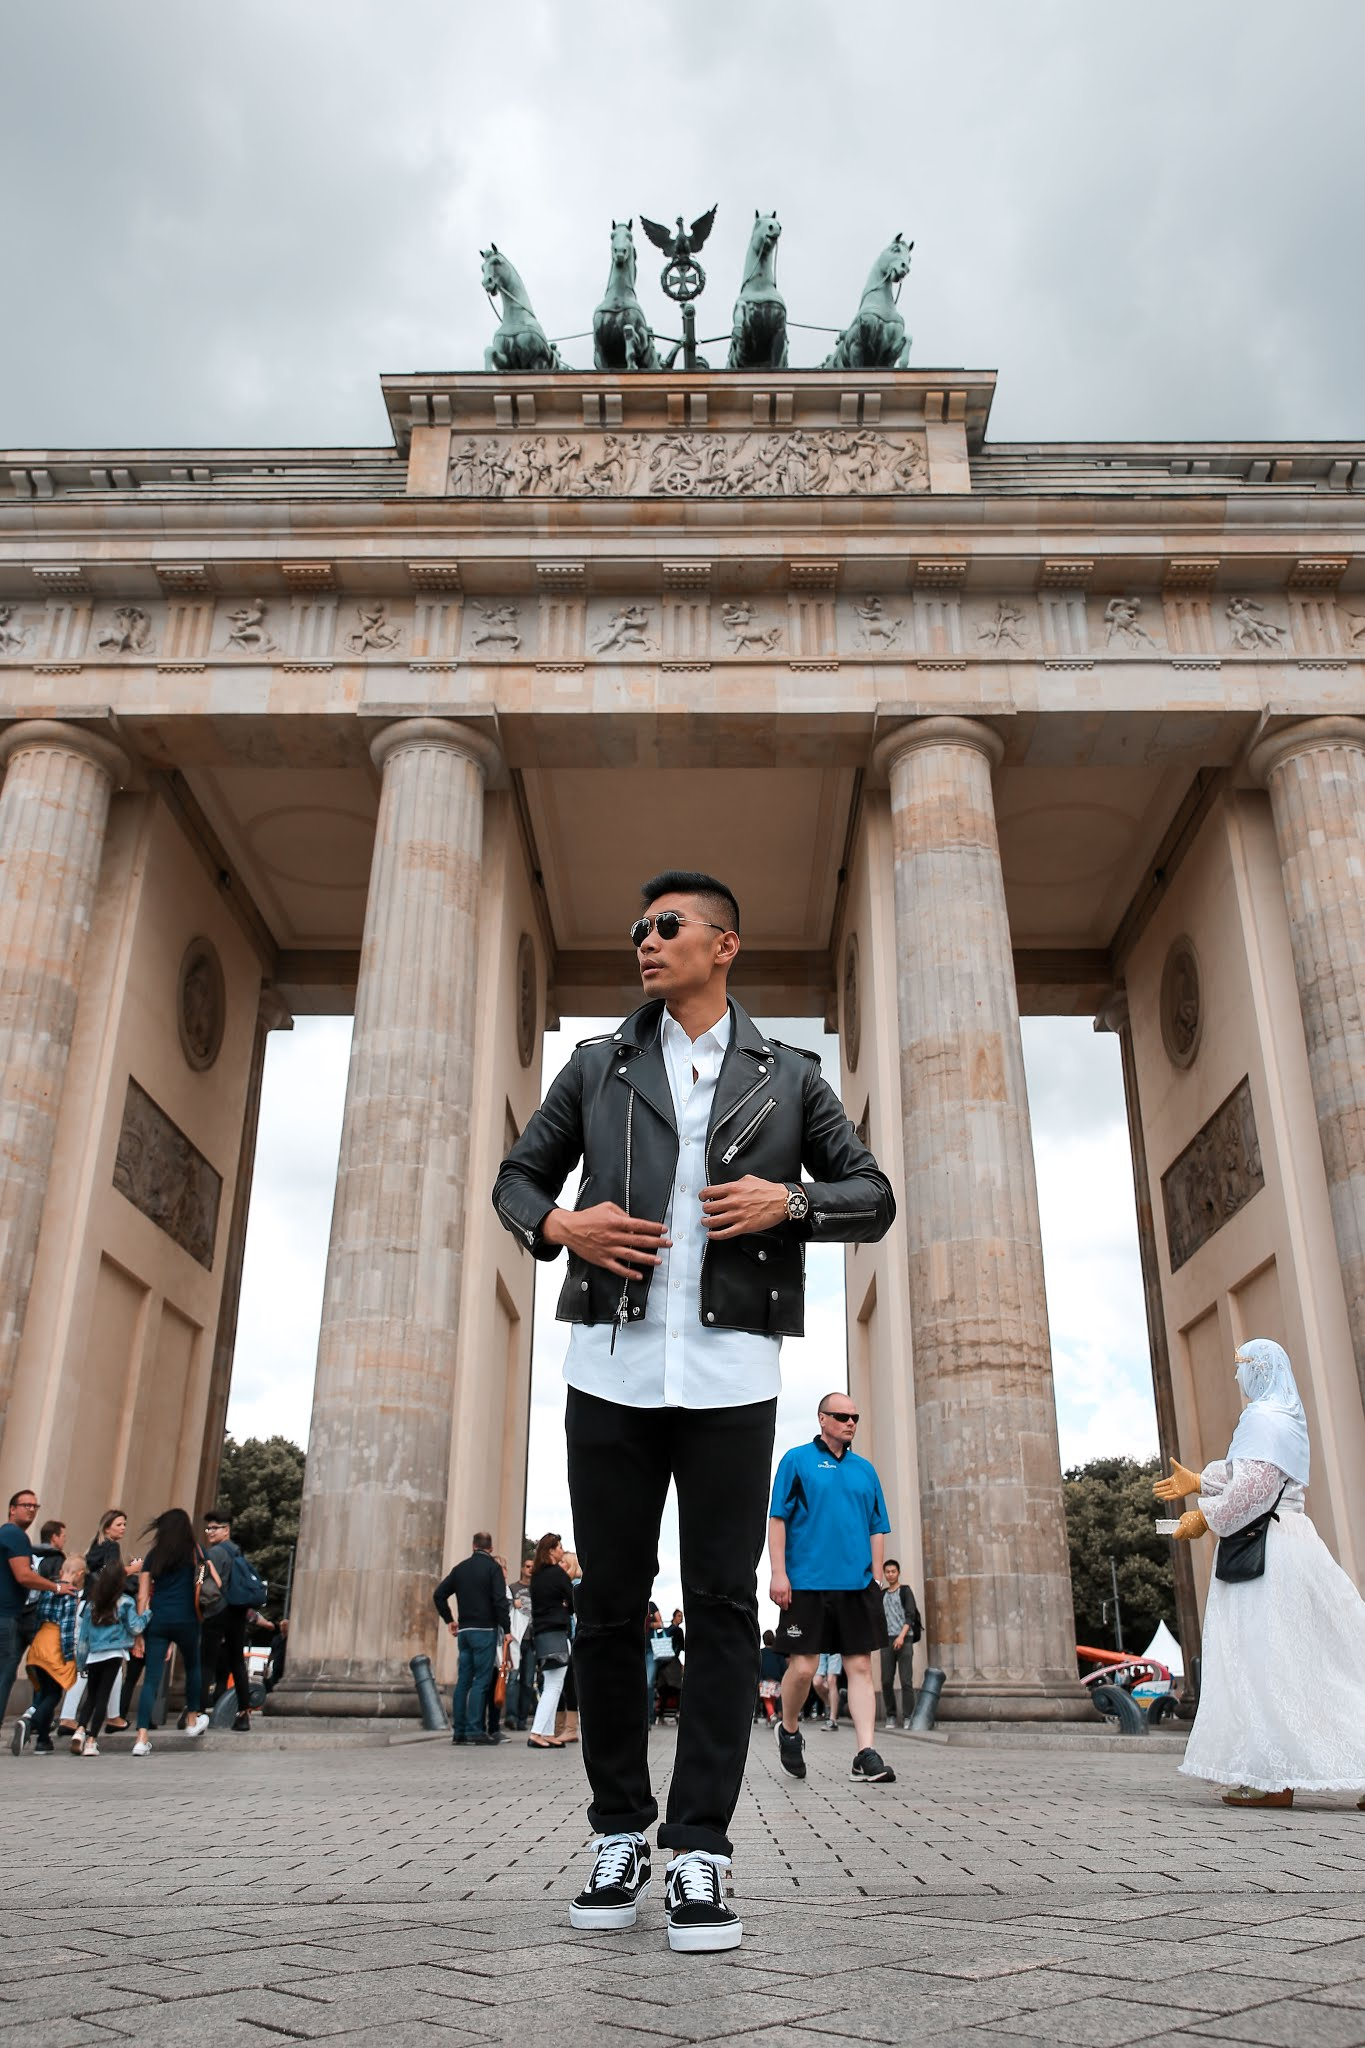 Leo Chan at The Brandenburg Gate